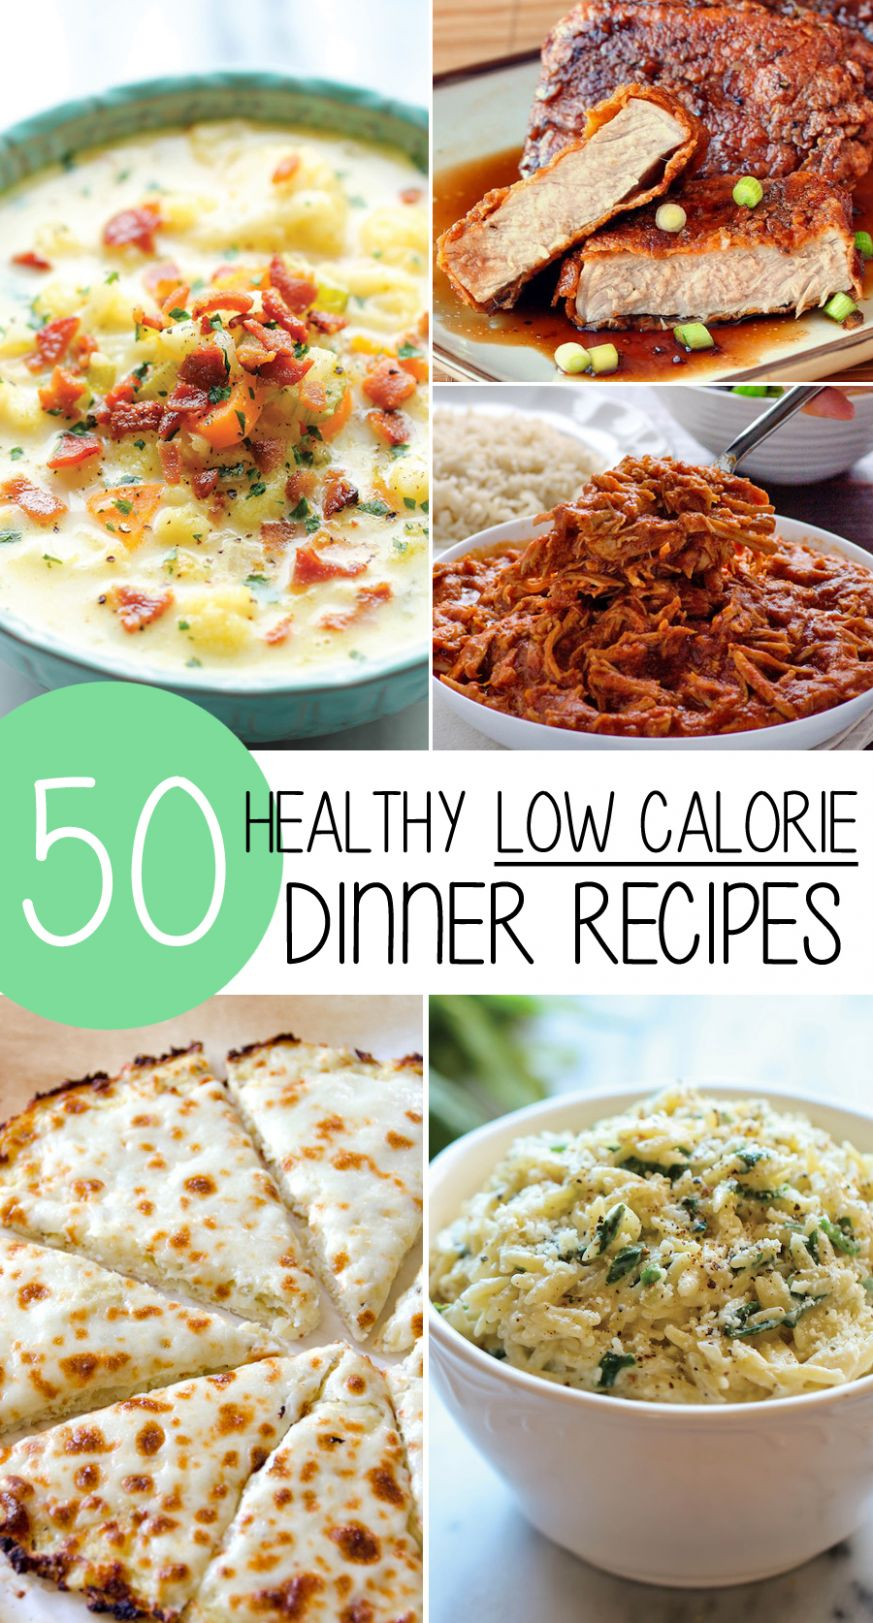 12 Healthy Low Calorie Weight Loss Dinner Recipes! – TrimmedandToned - Food Recipes That Help You Lose Weight